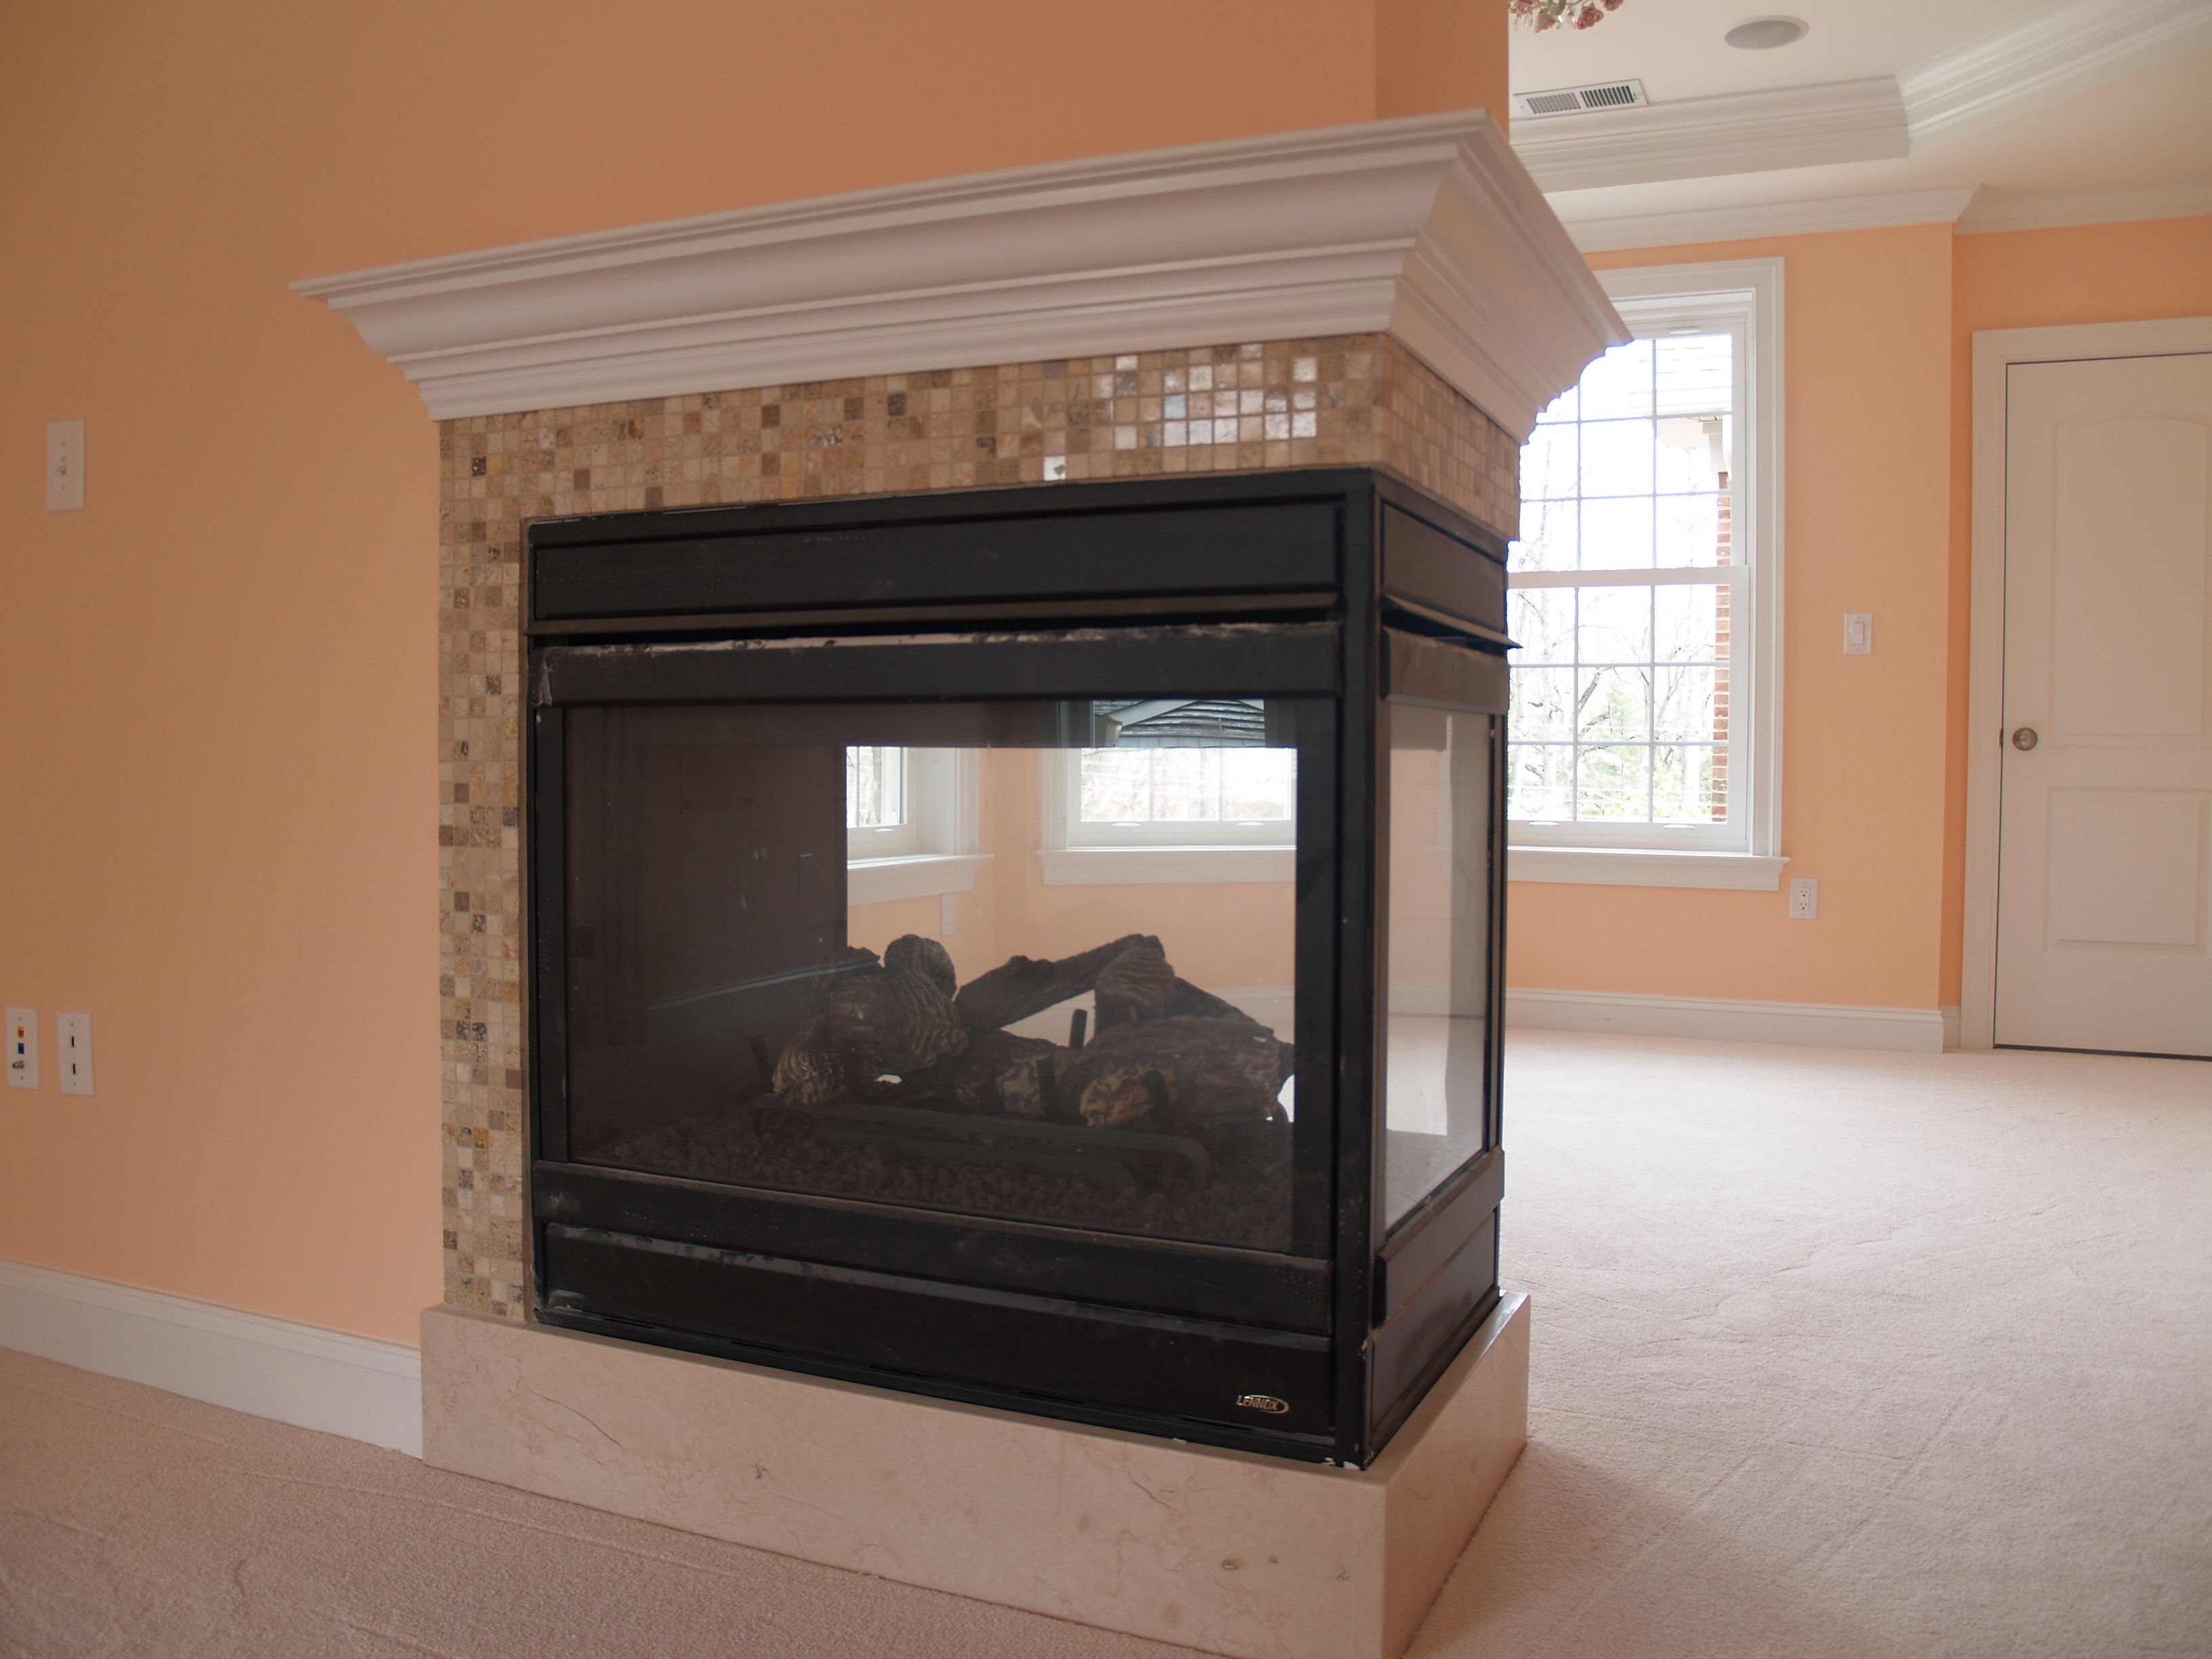 Three sided gas fireplace model EDVPF by Lennox Hearth products